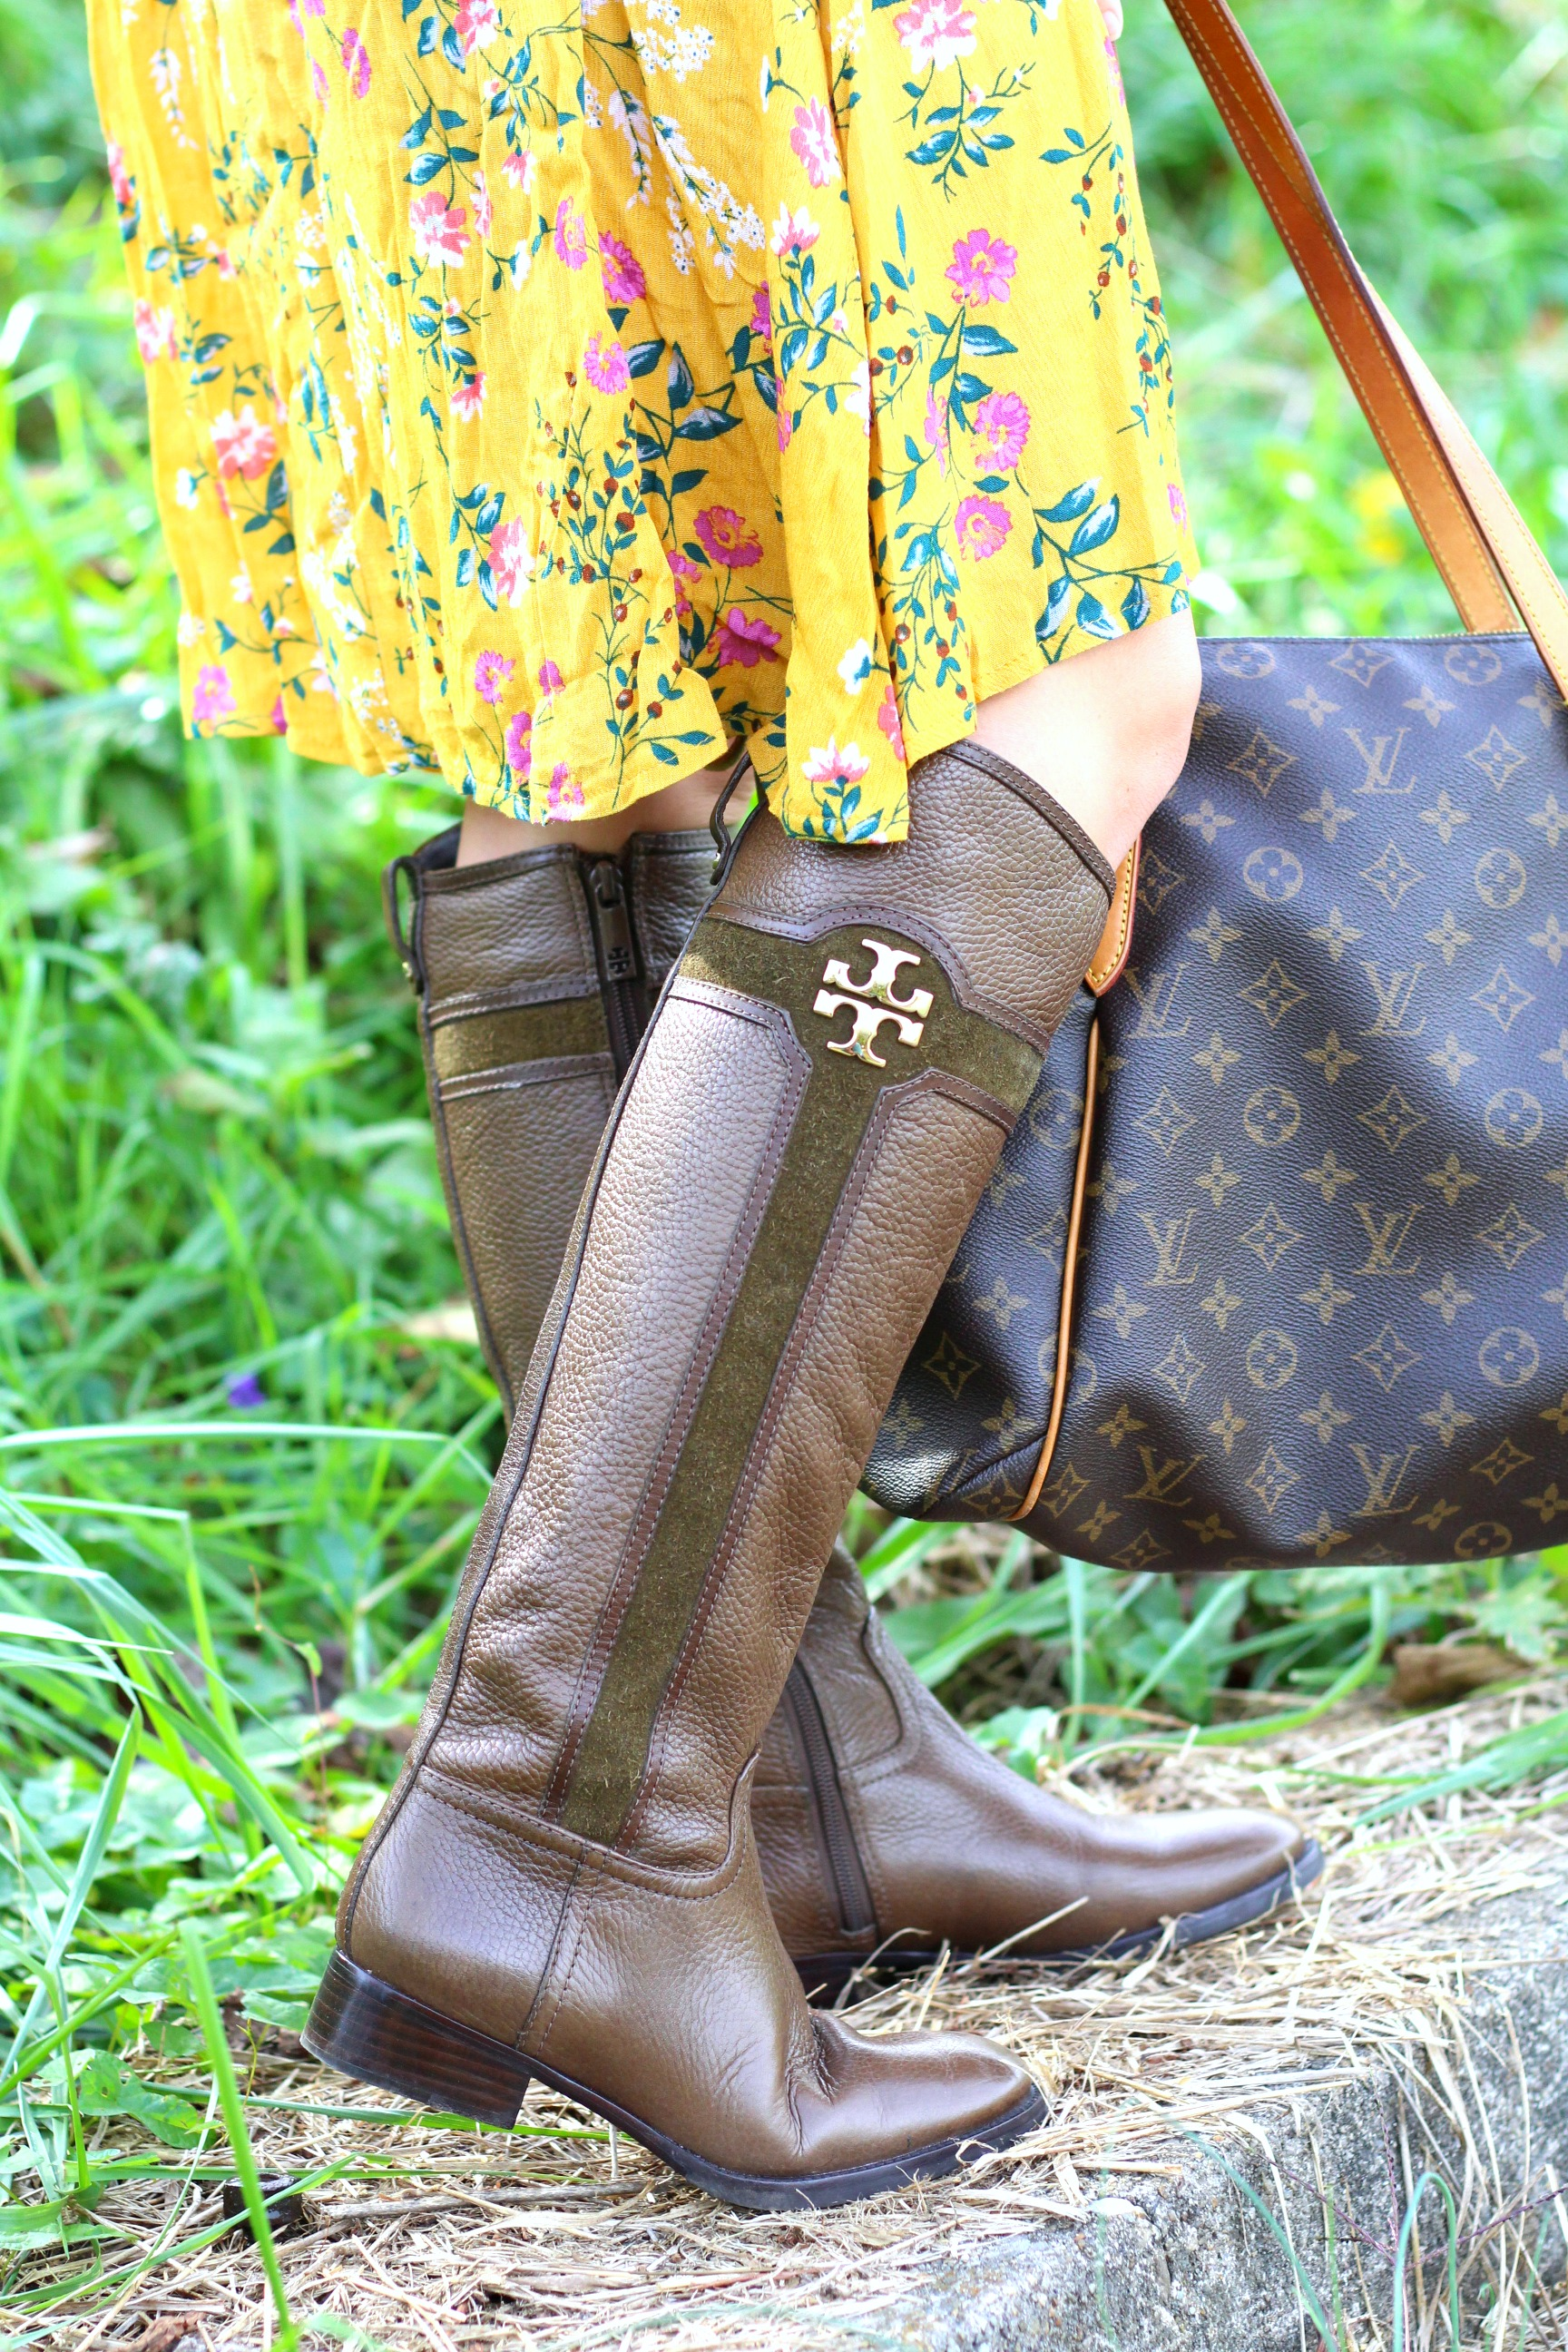 toryburchboots